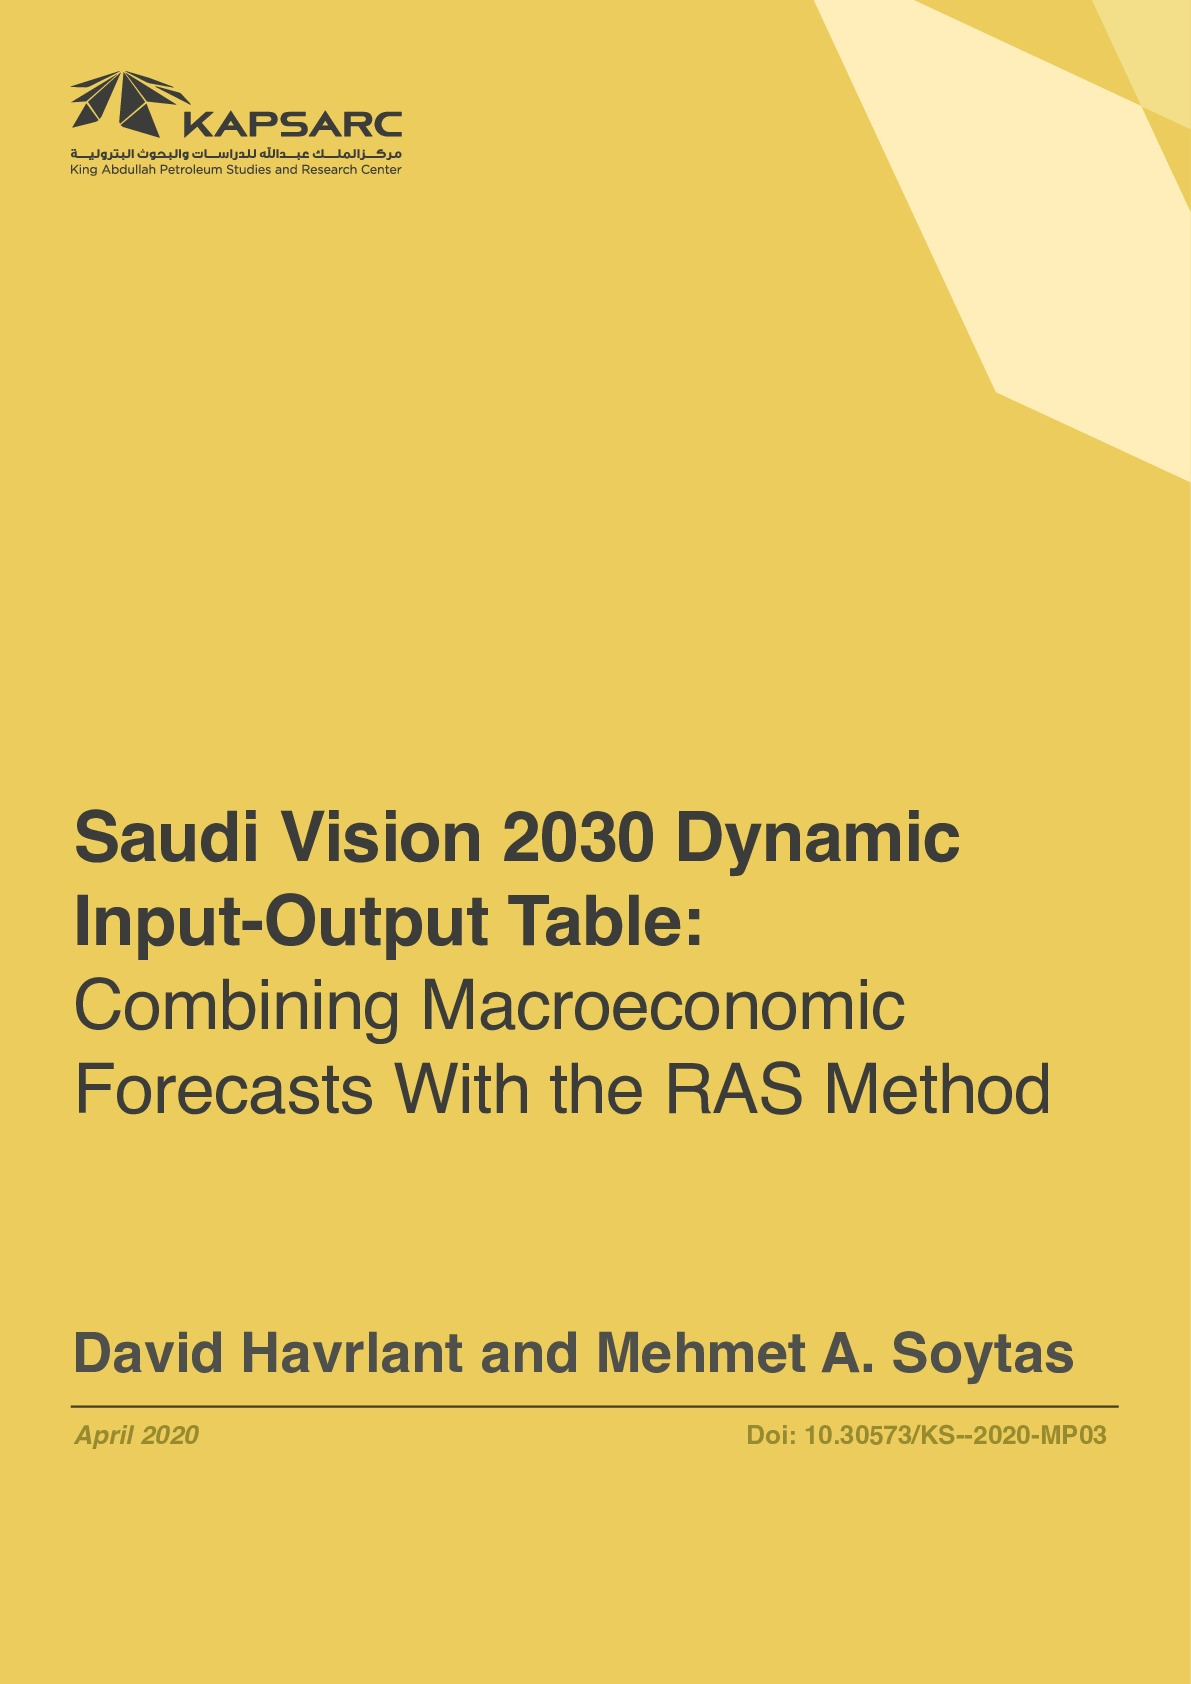 Saudi Vision 2030 Dynamic Input-Output Table: Combining Macroeconomic Forecasts With the RAS Method